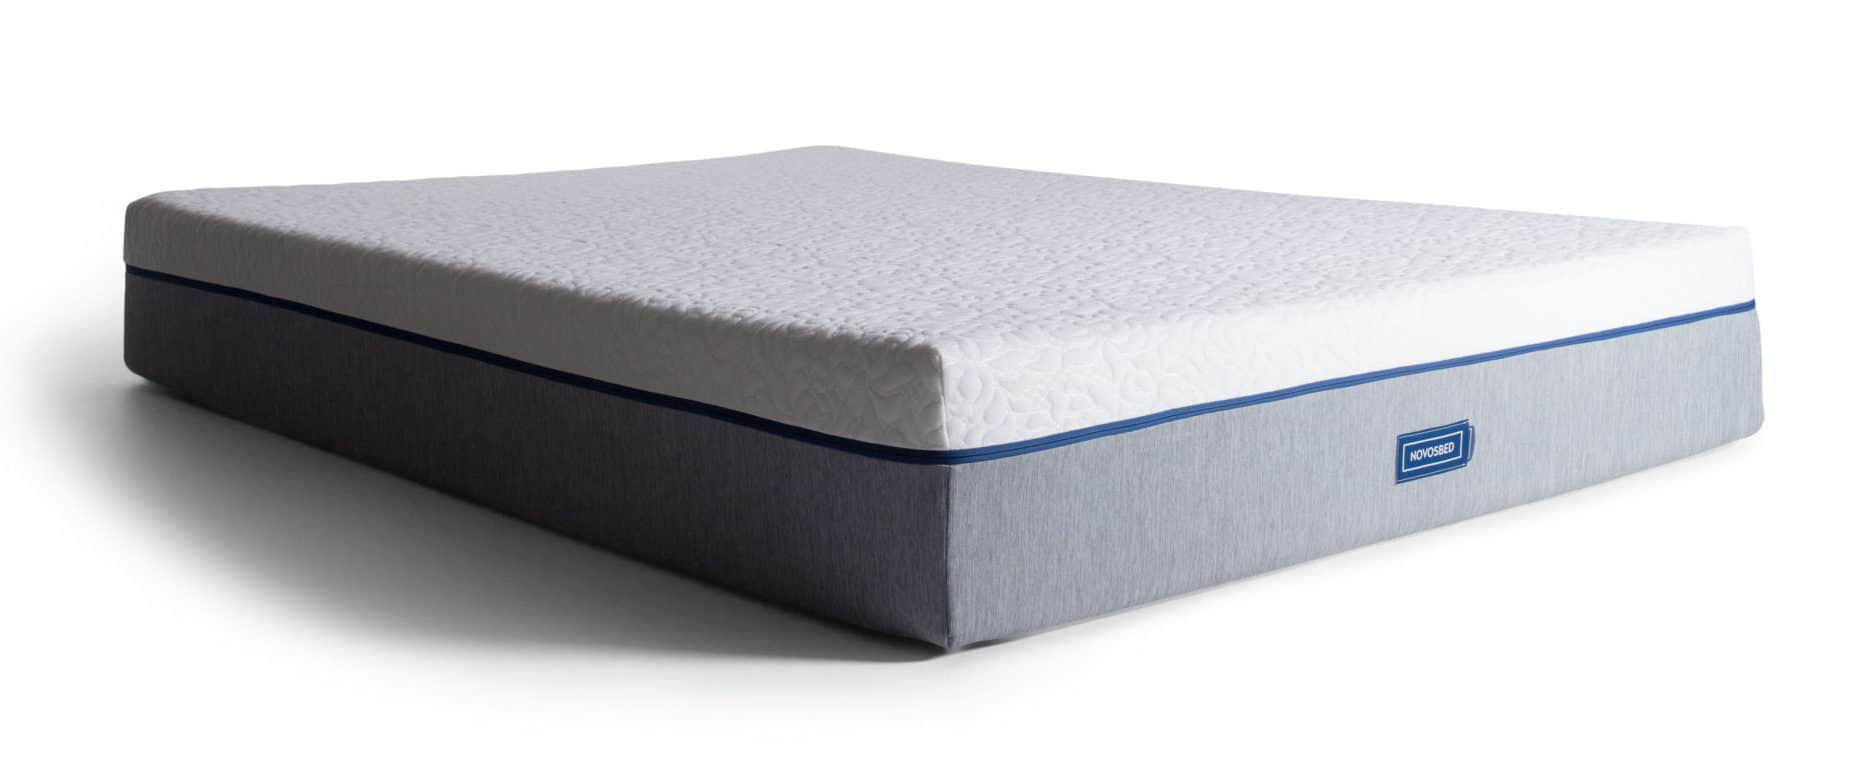 The Novosbed Memory Foam Mattress